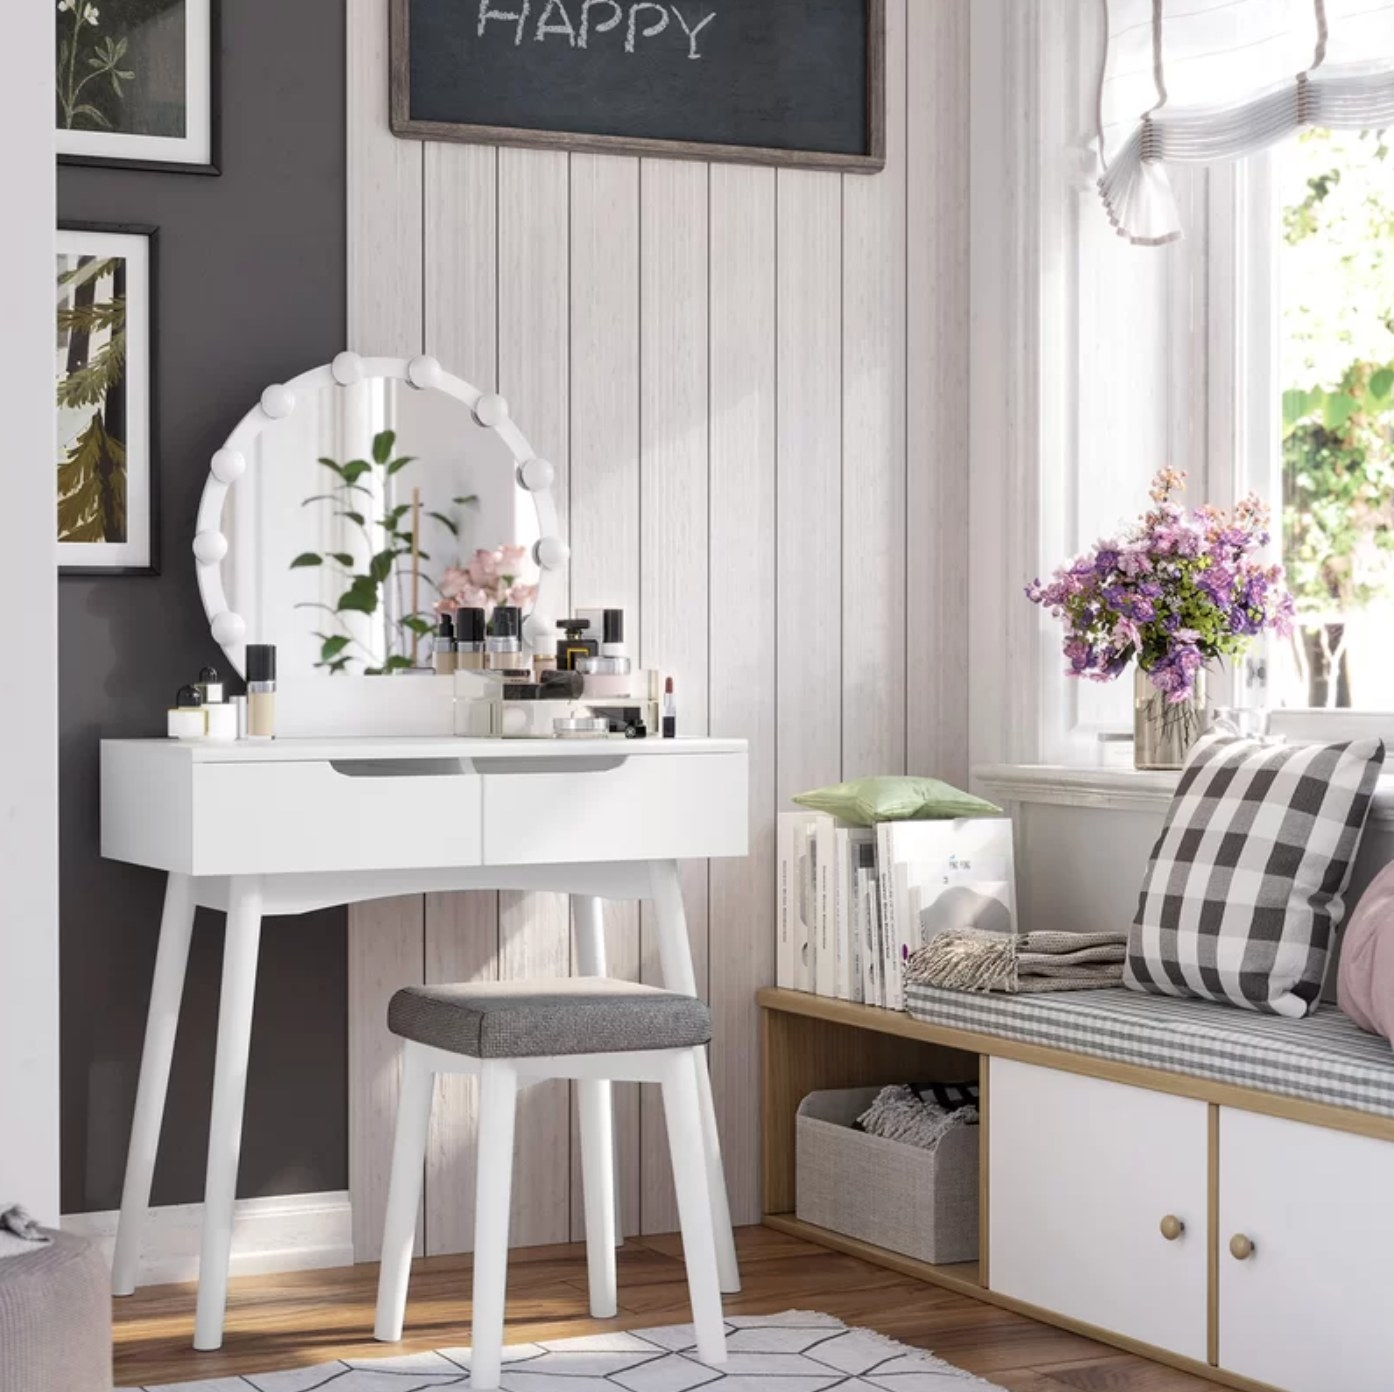 The vanity set with mirror in white